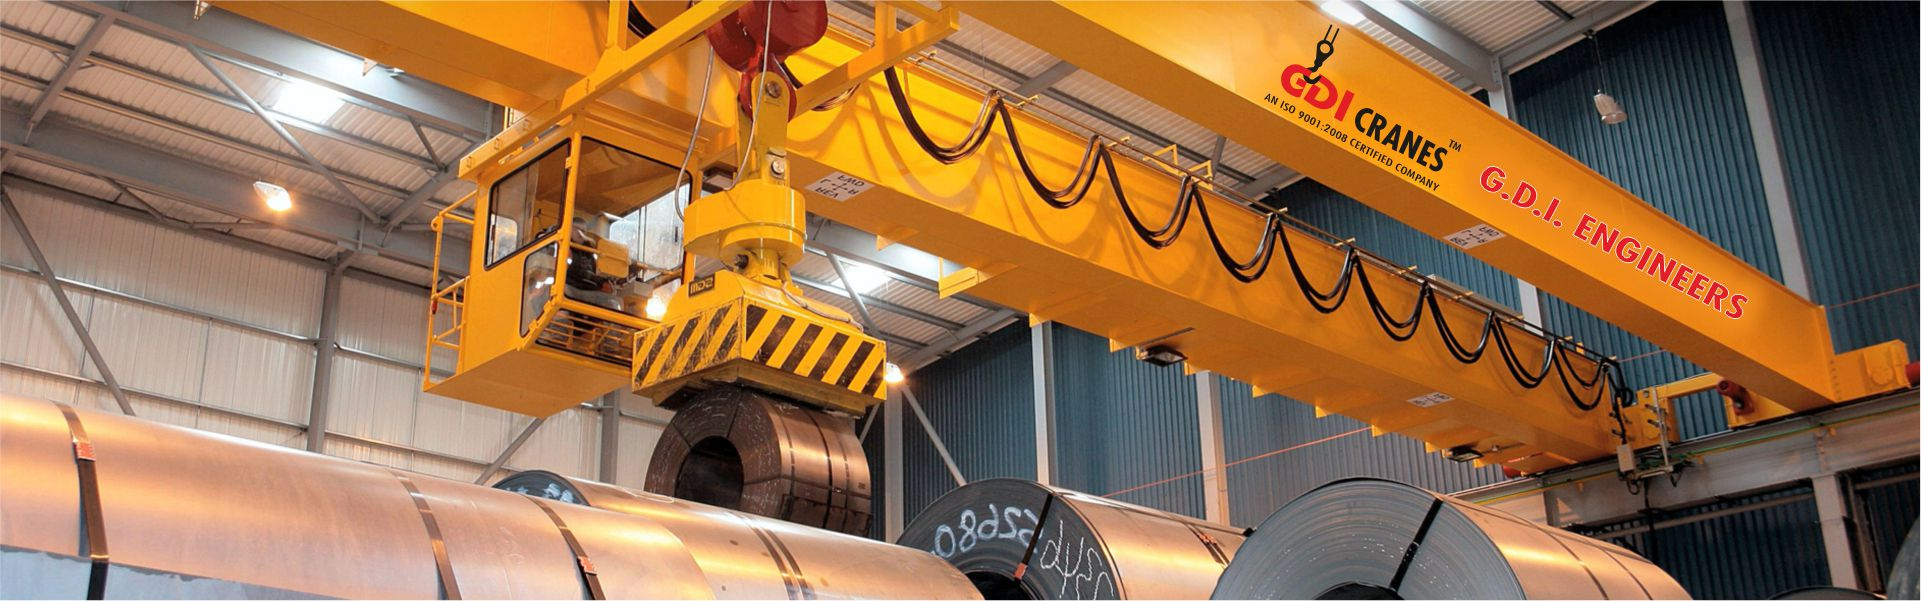 Manufacturers India Eot Cranes Manufacturers Over Head Cranes Eot Cranes In Ludhiana